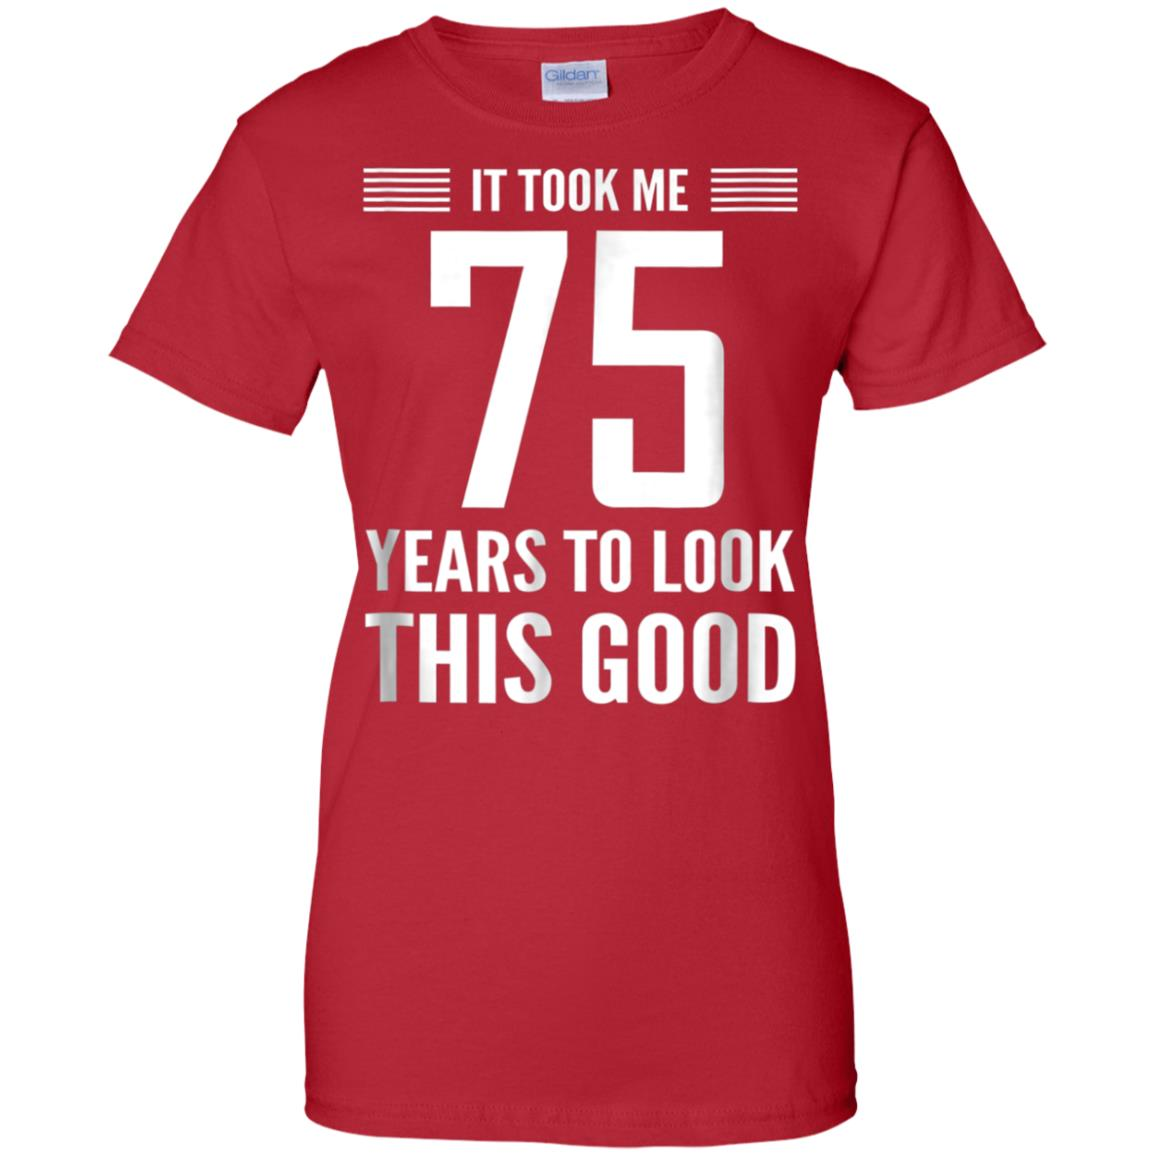 75th Birthday T Shirt Took Me 75 Years Look This Good